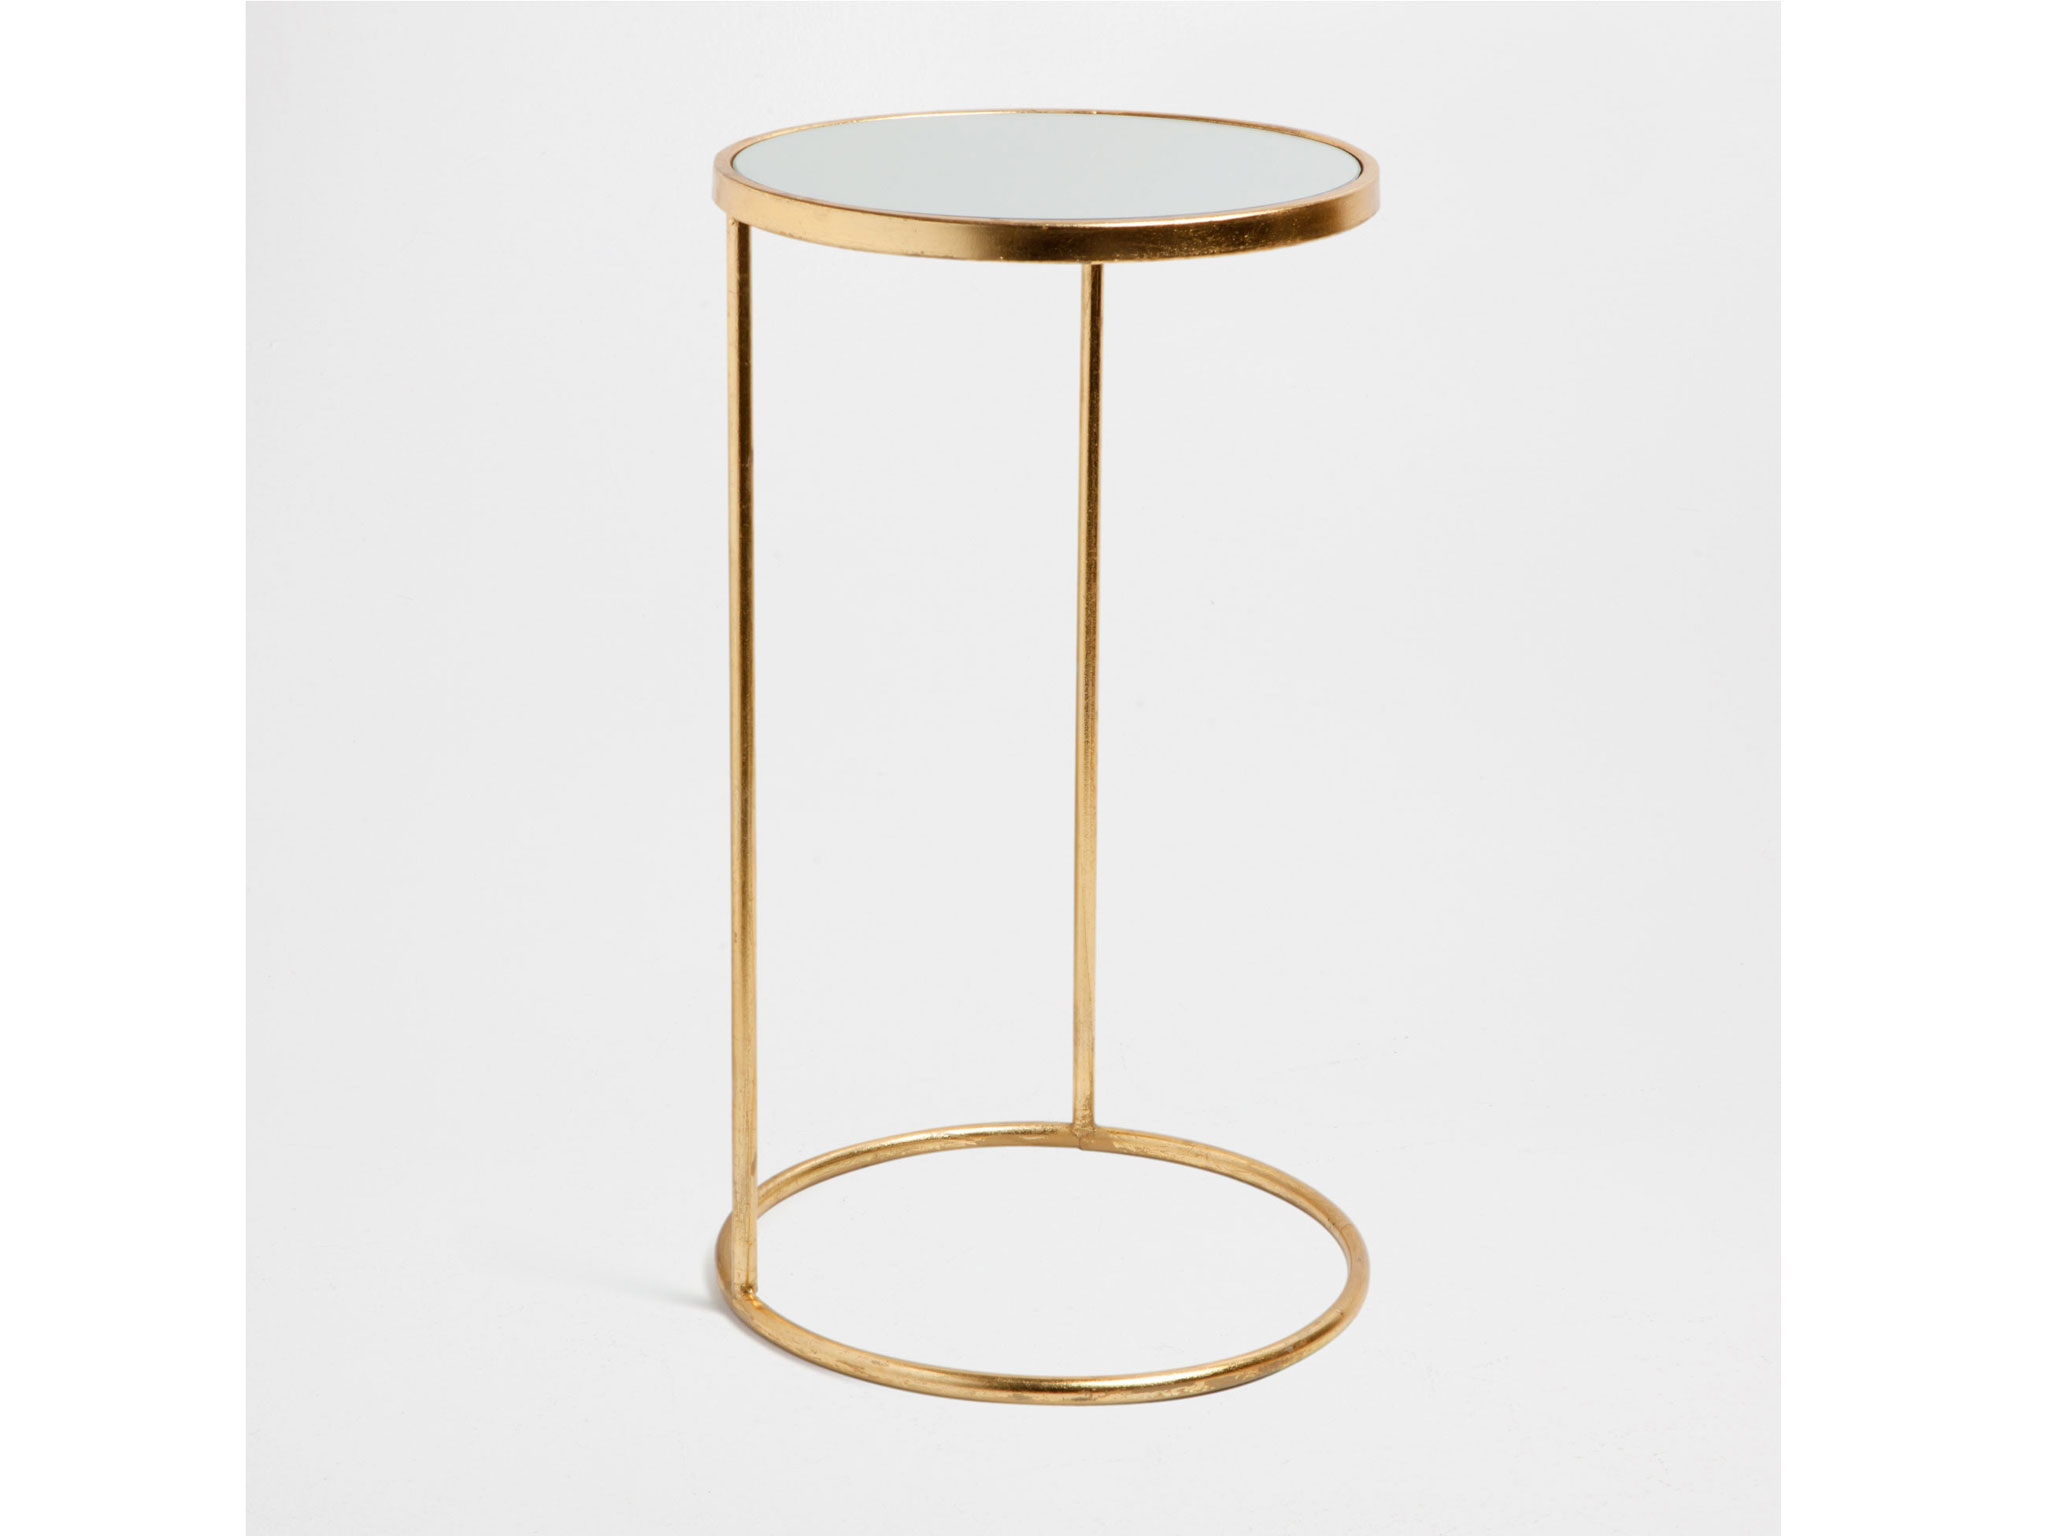 best side tables the independent zara home accent table high street fashion brands can lack when comes offering same style for your but this tall from looks like would make great